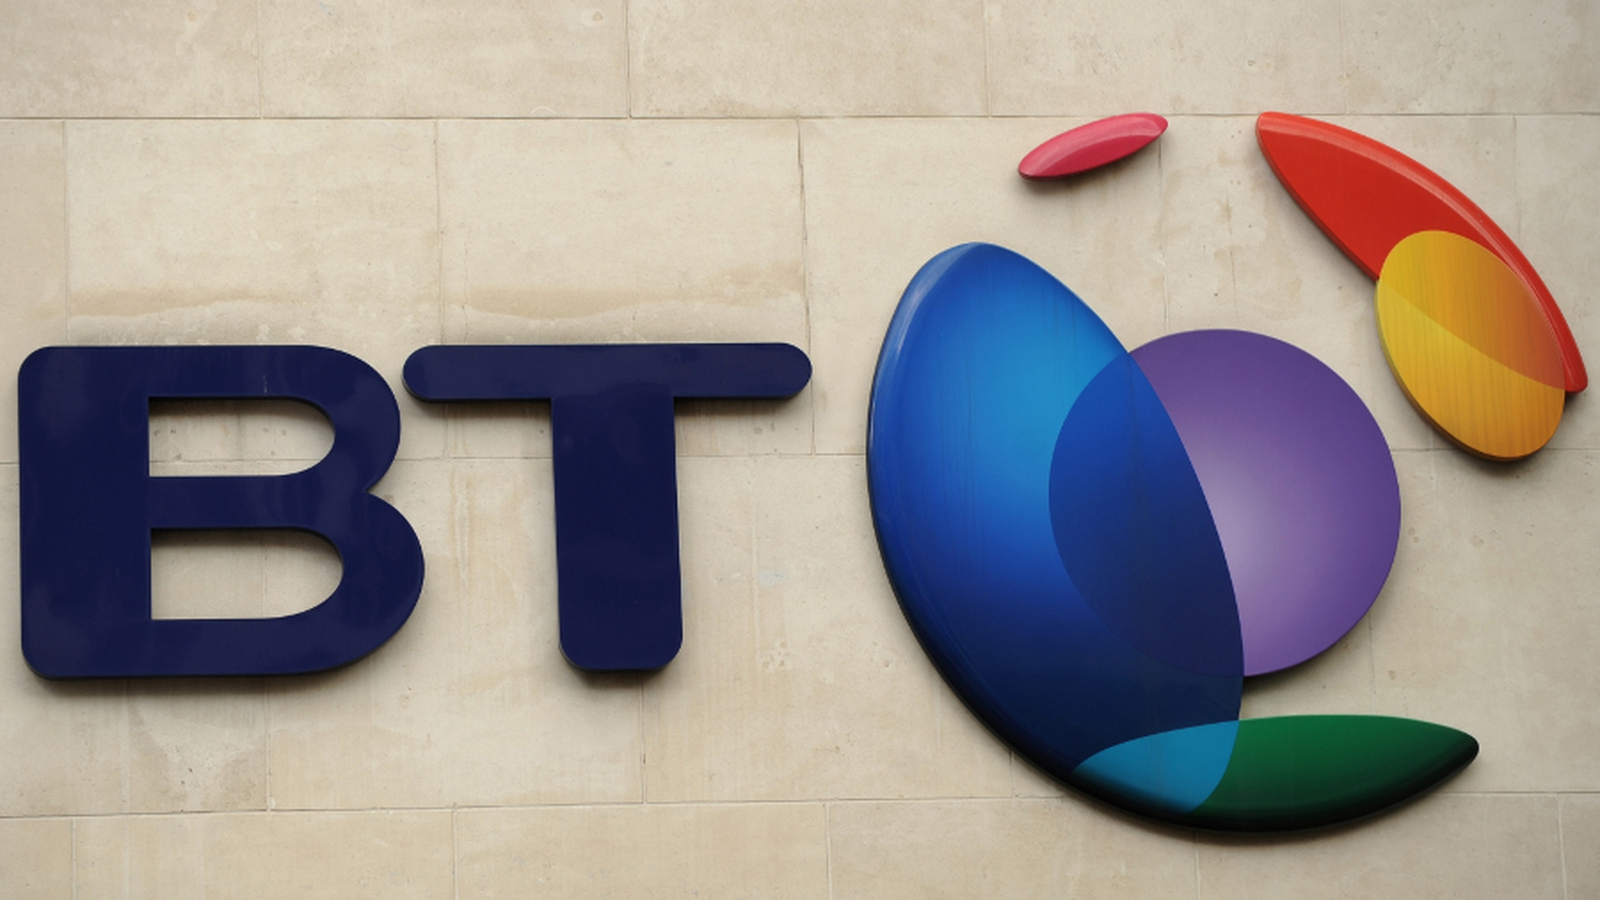 Image of article 'BT's Q1 revenue and earnings fall 7% on Covid-19 impact'